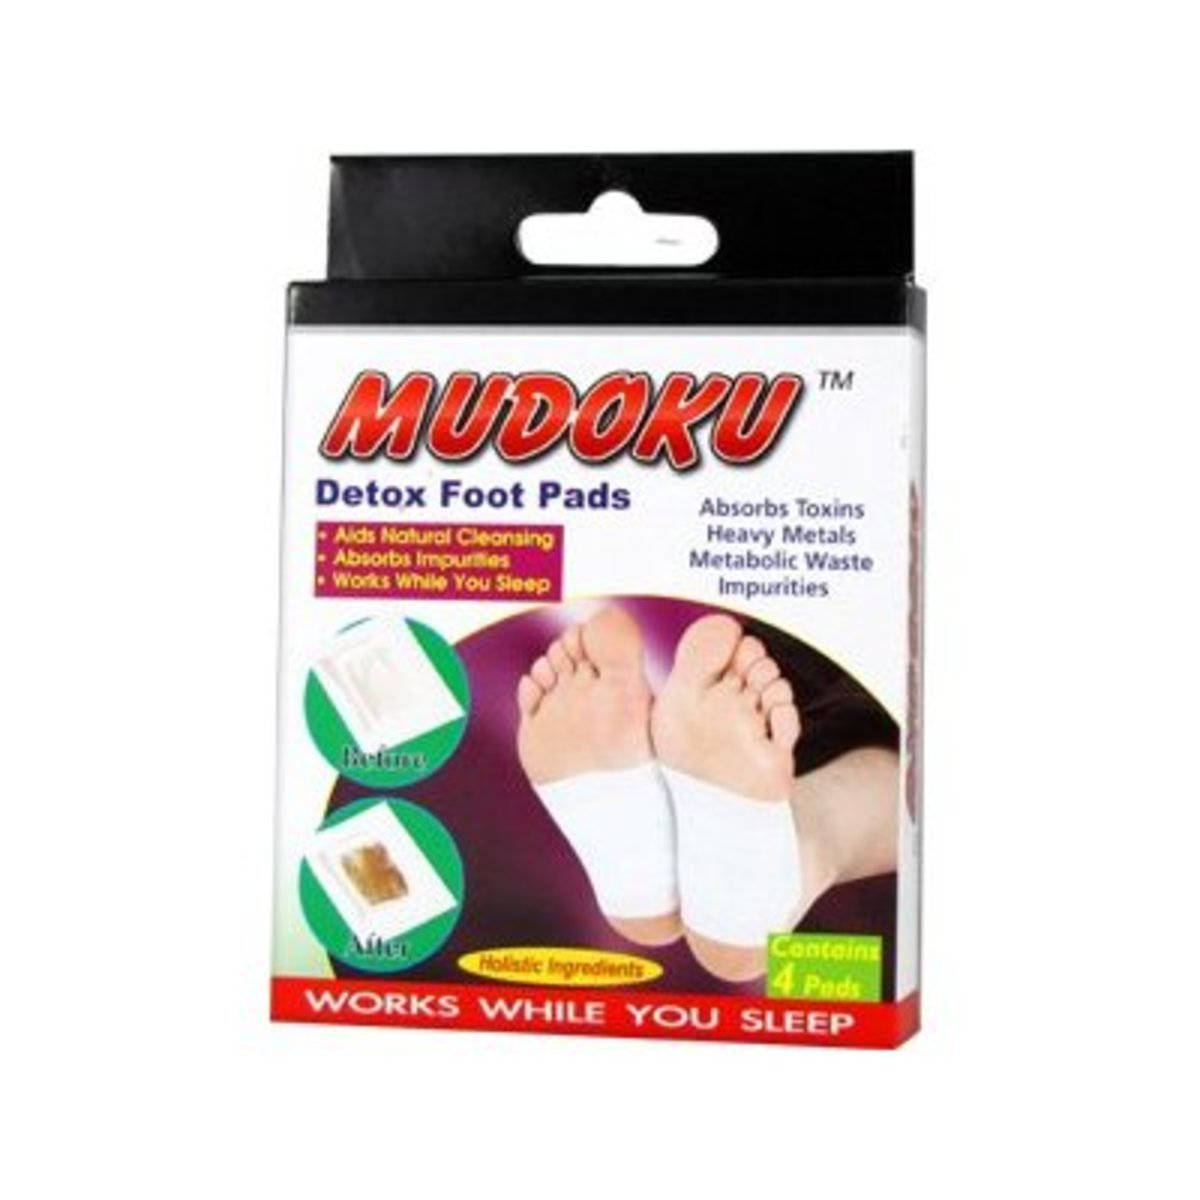 Mudoku Detox Foot Pads Results from Moisture